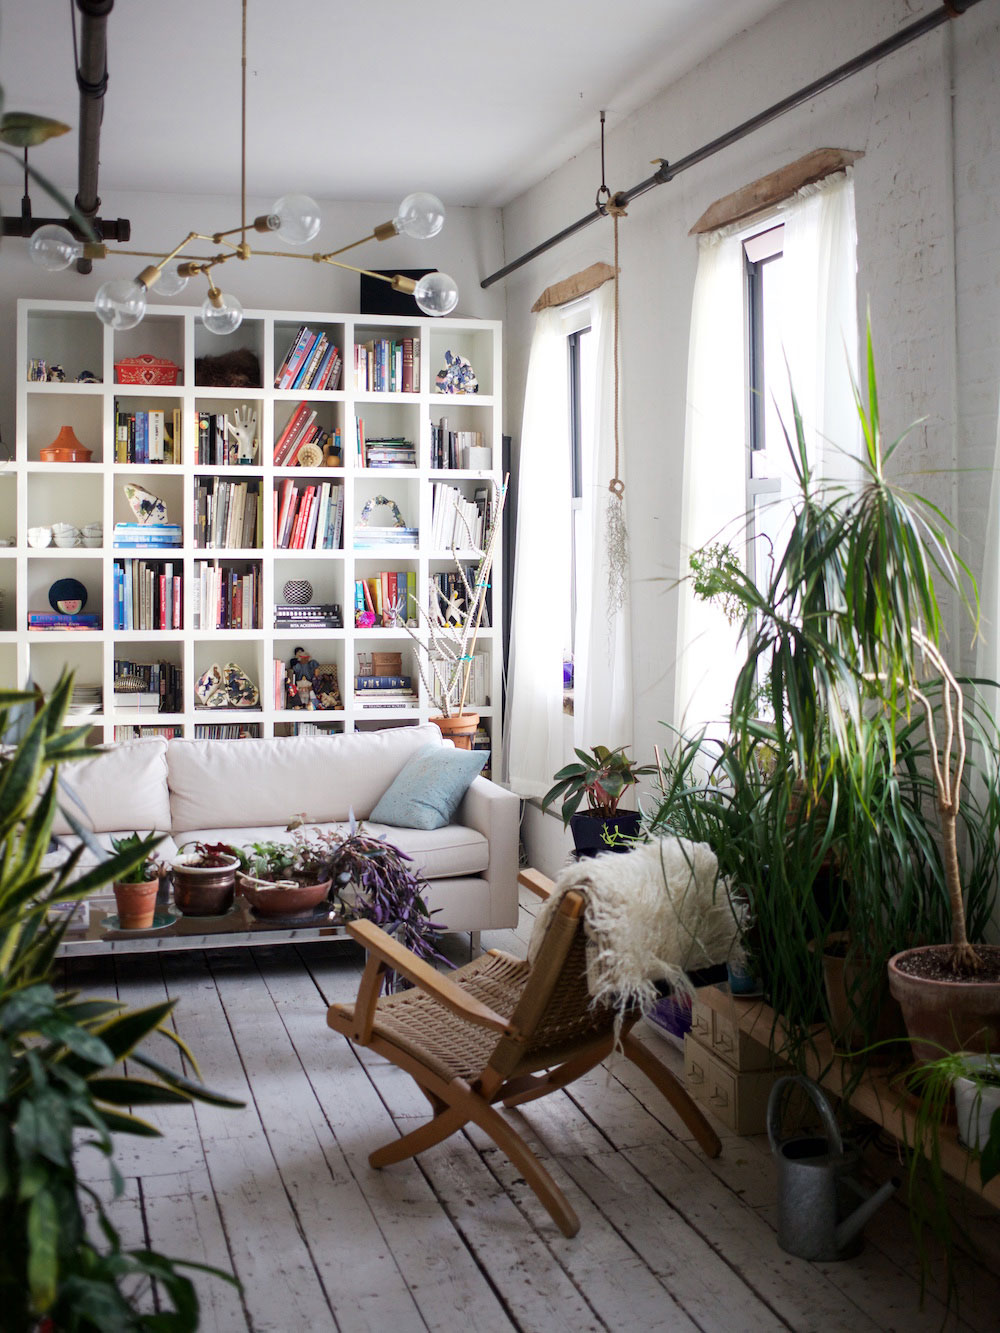 Brooklyn-houseplants-filled-loft-light-lounge-chair-bookcase Creative ideas for decorating with flowers